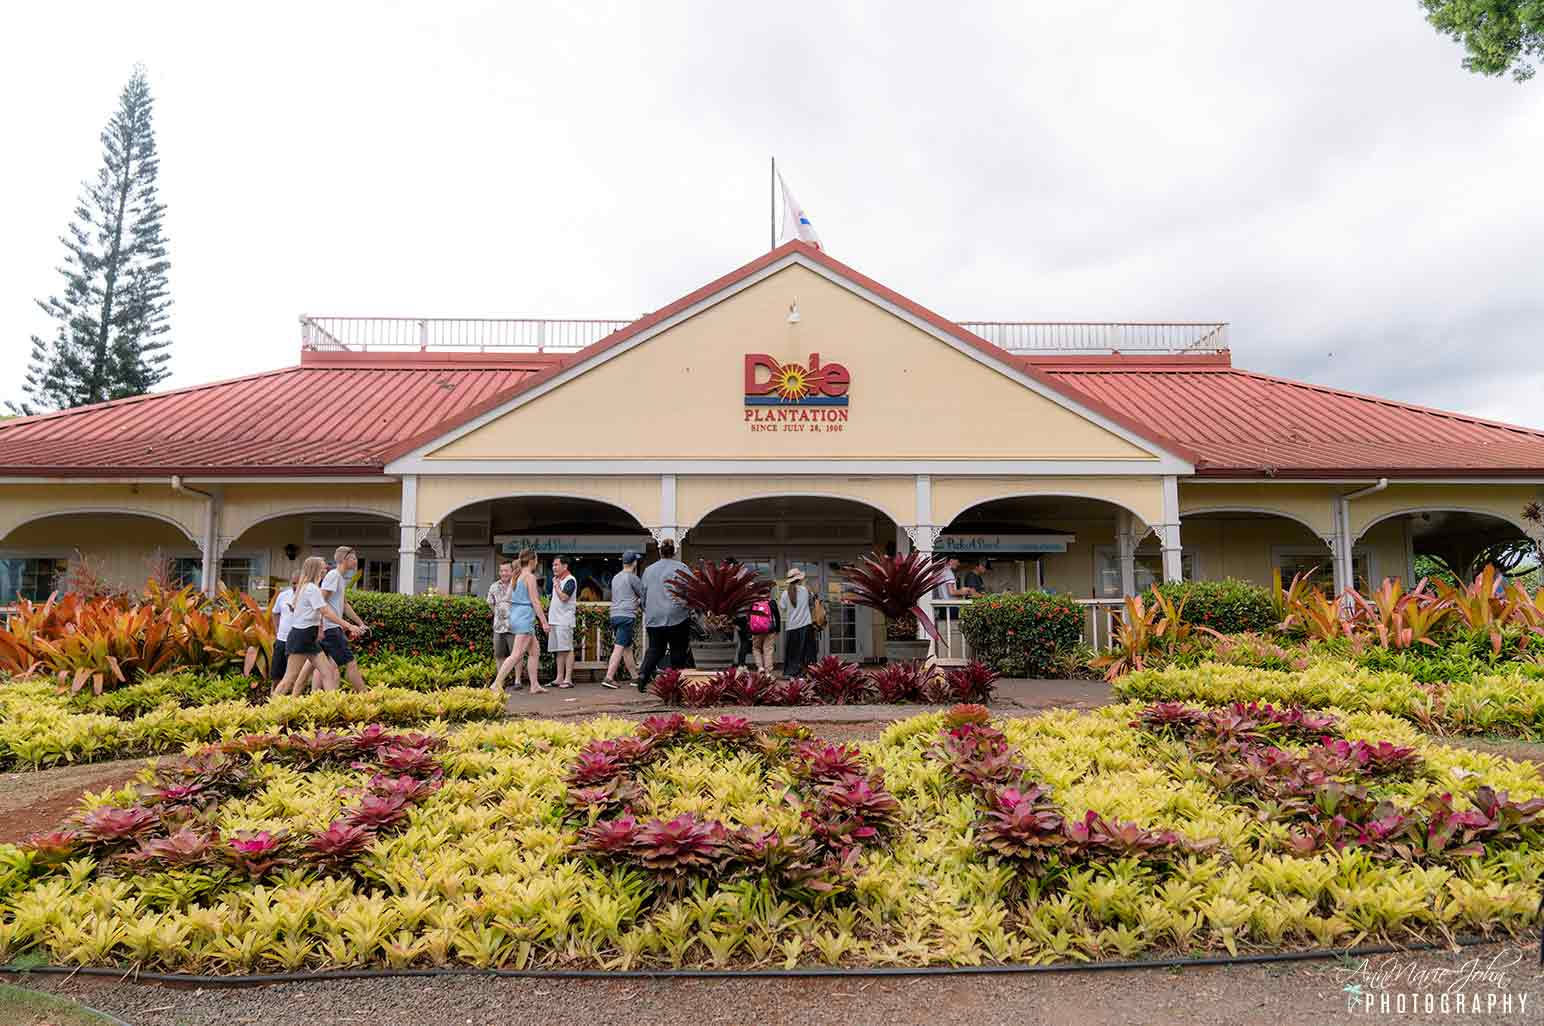 5 Things To Do At The Dole Plantation With Your Family Annmarie John